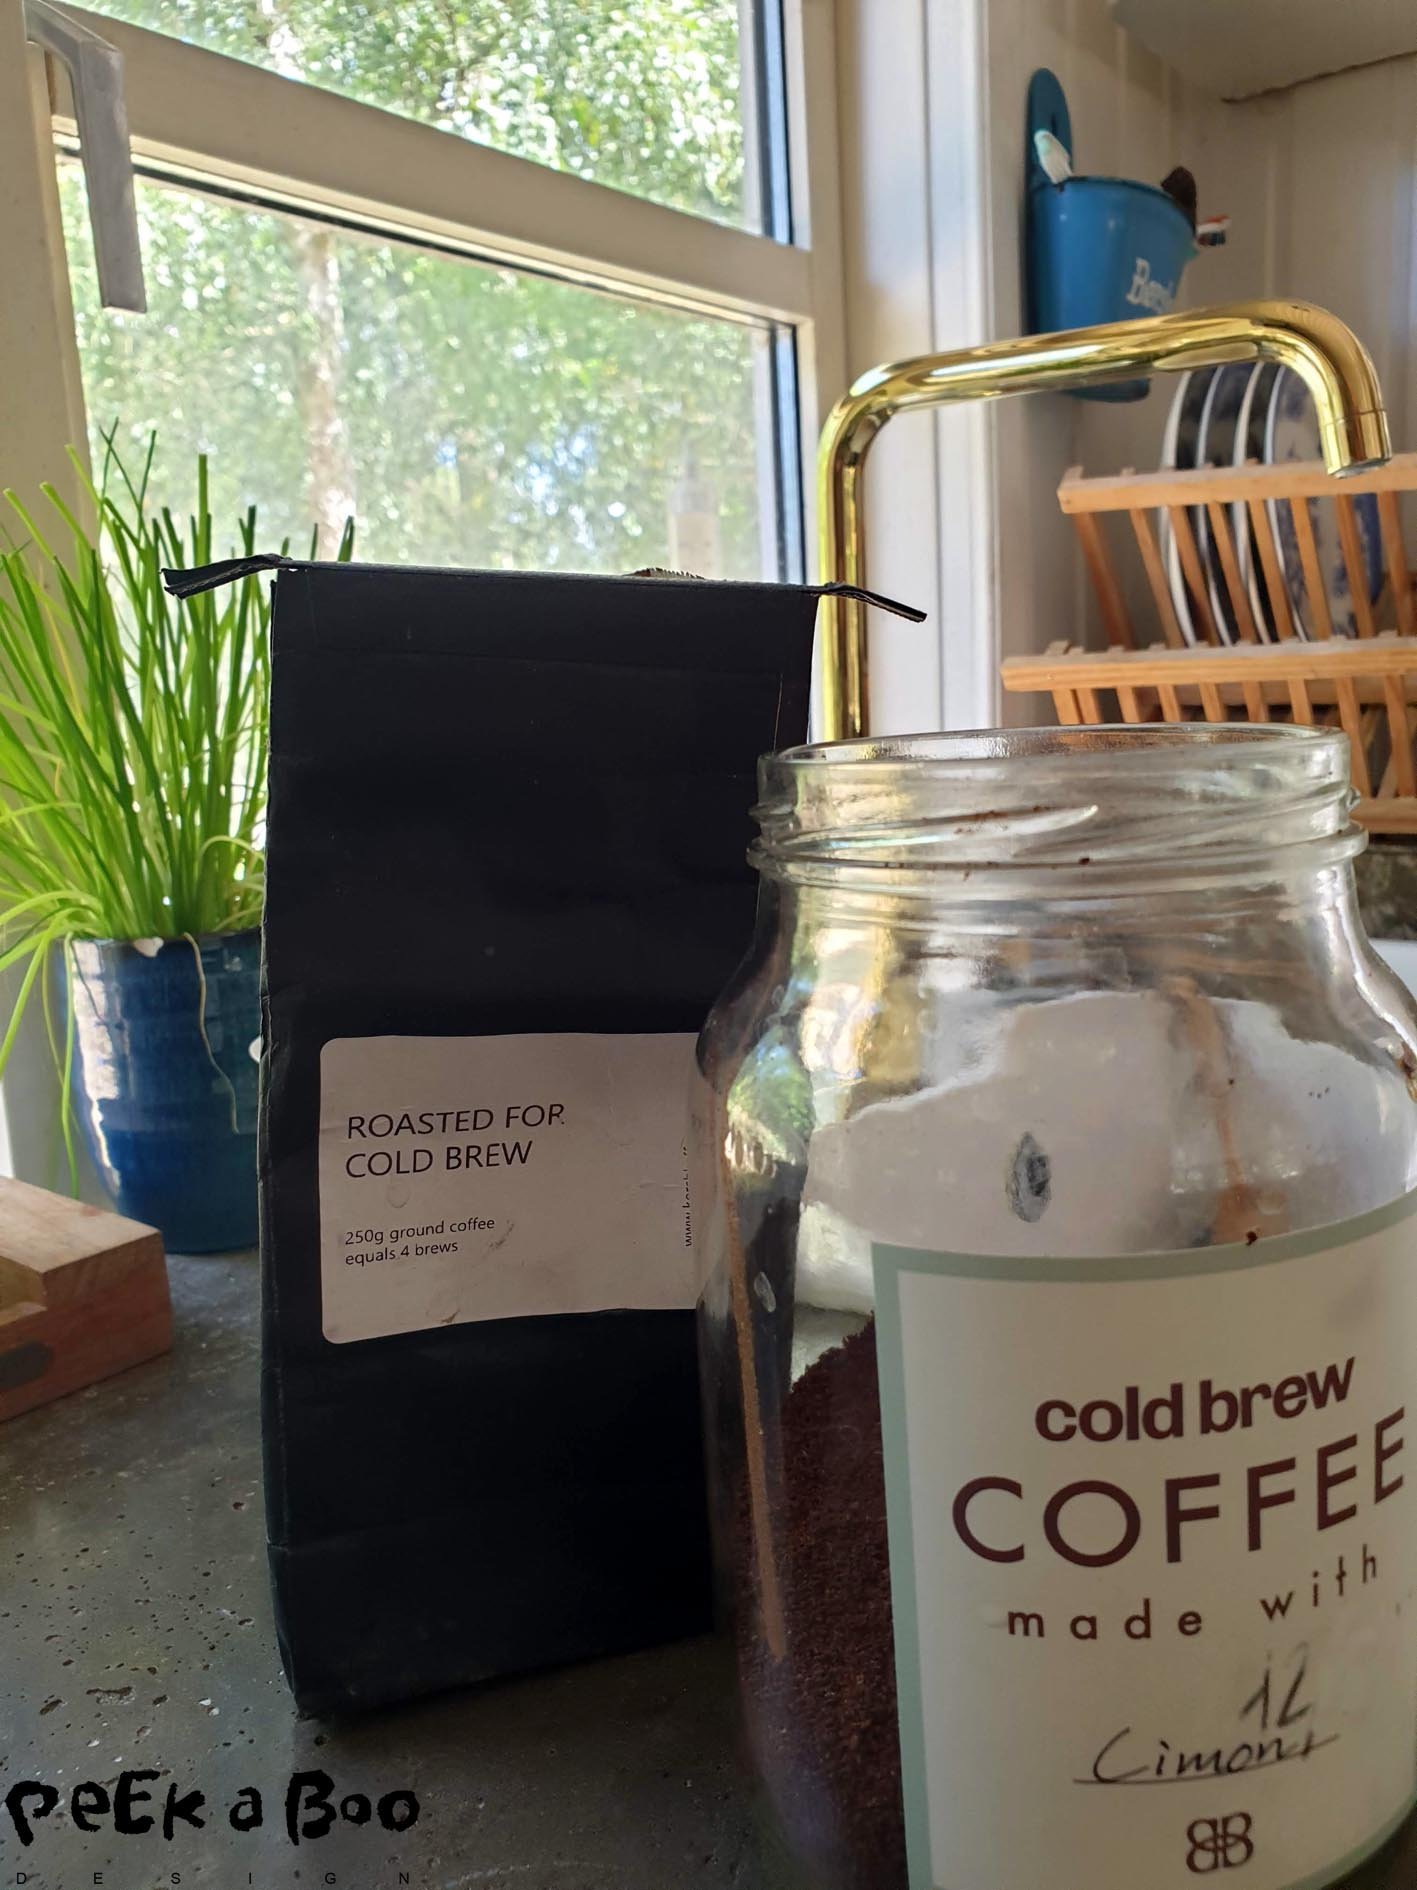 All you need for making your own cold brew is : coffee and water.